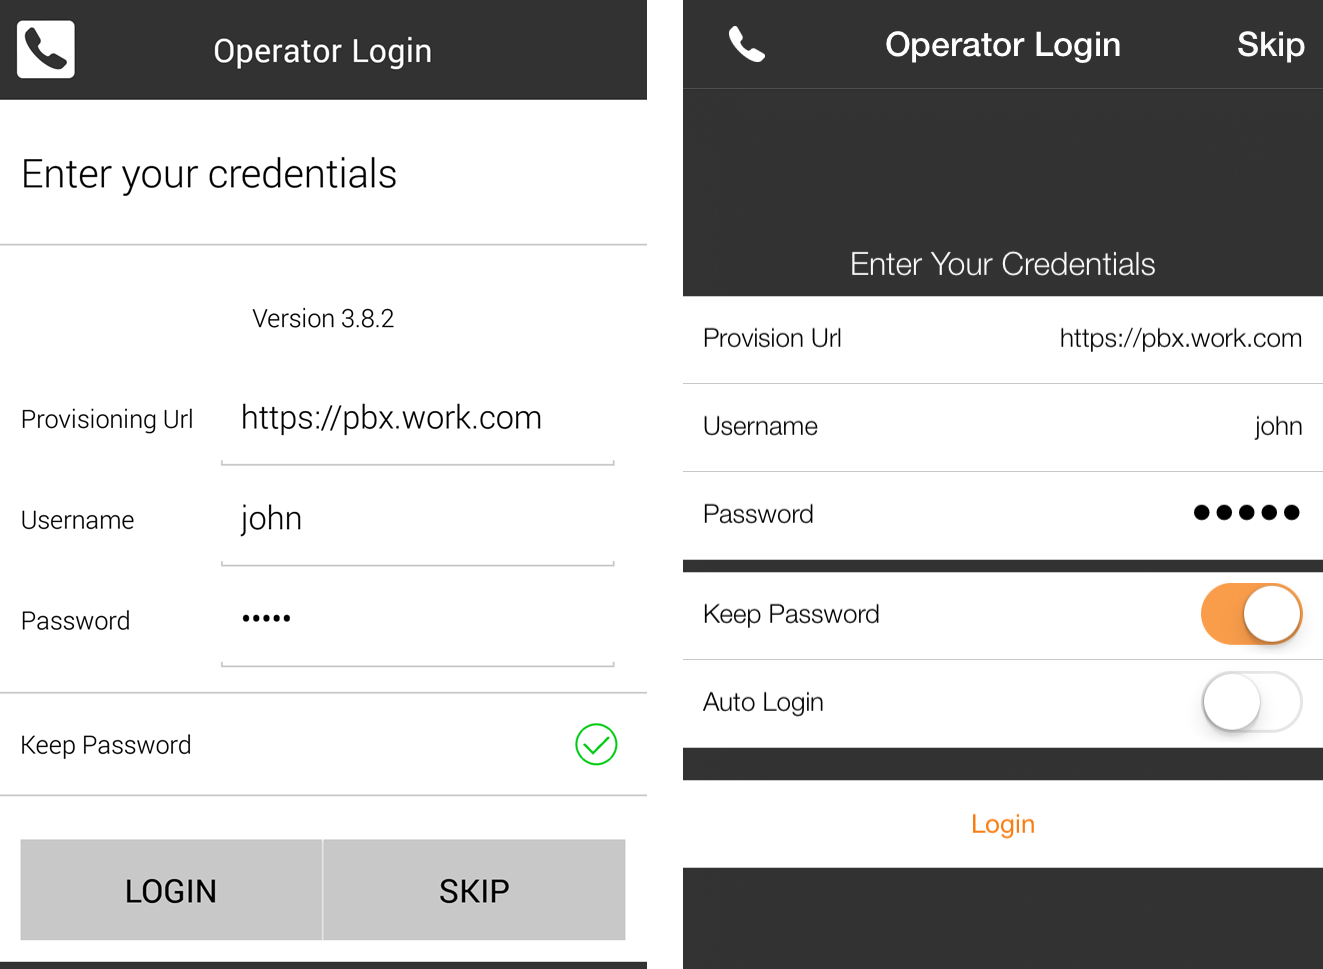 configuring kerio operator softphone for mobile devices login to kerio operator softphone on your apple iphone or android